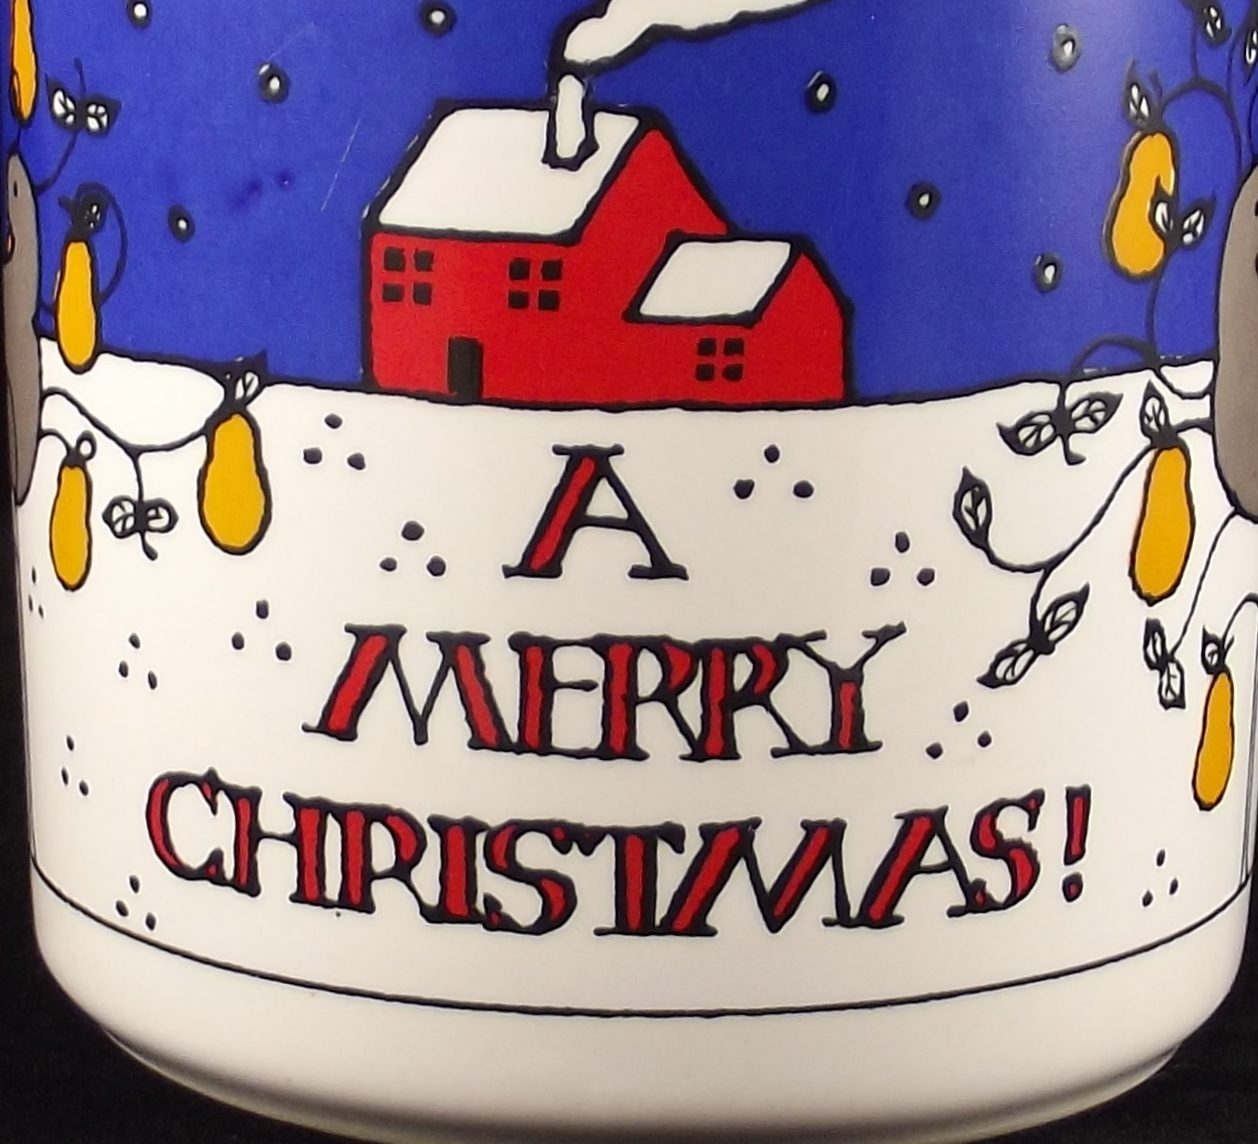 Merry Christmas coffee mug FPC England